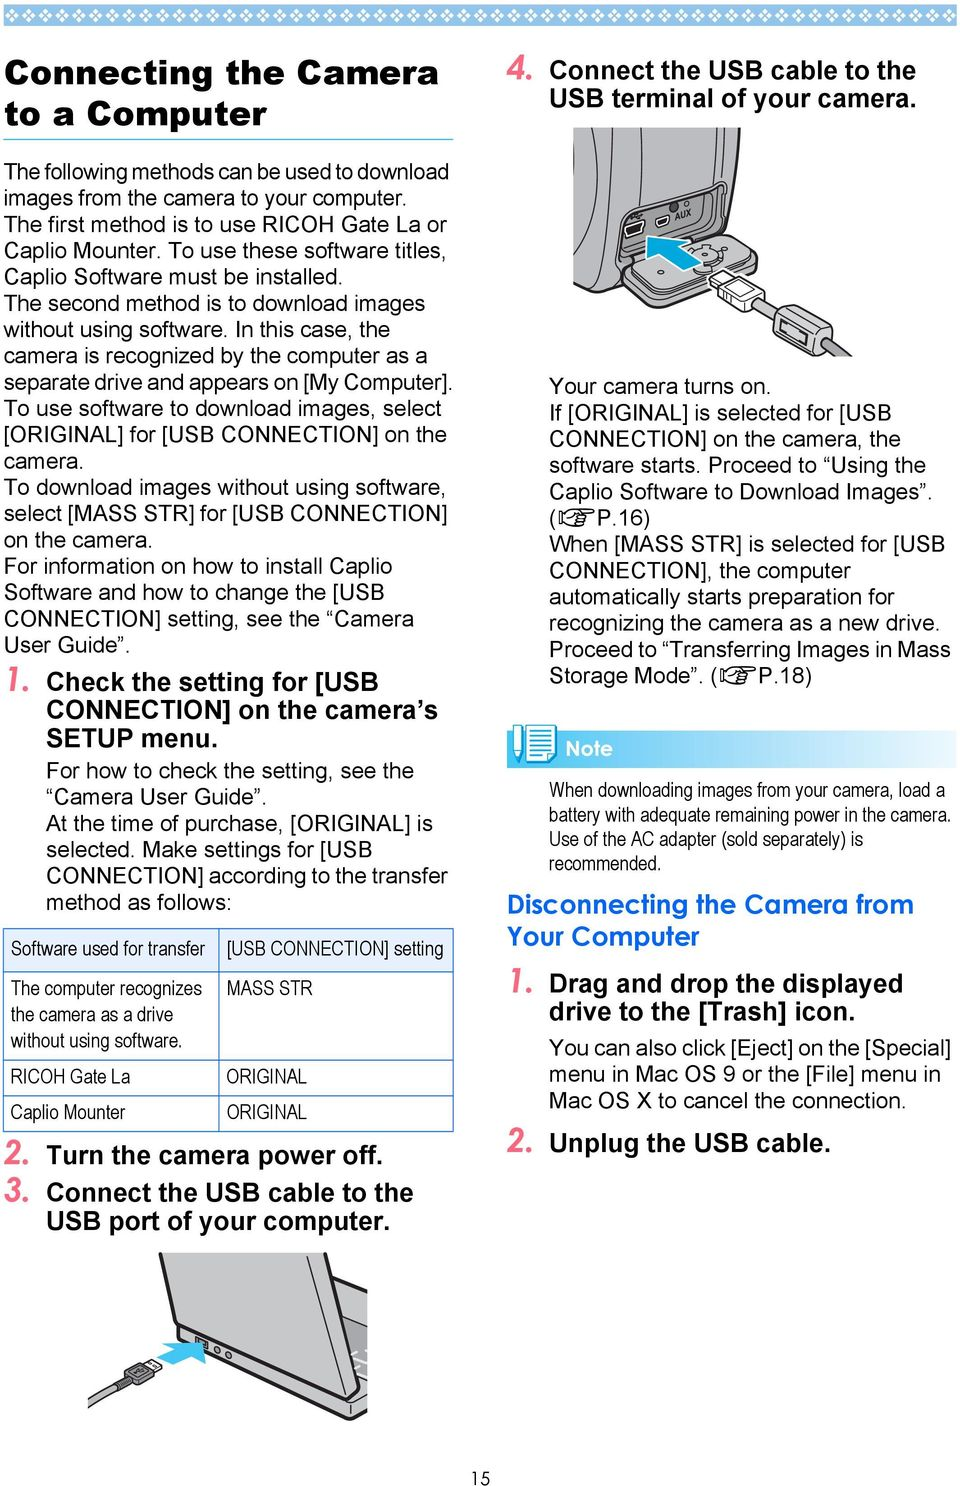 In this case, the camera is recognized by the computer as a separate drive and appears on [My Computer]. To use software to download images, select [ORIGINAL] for [USB CONNECTION] on the camera.